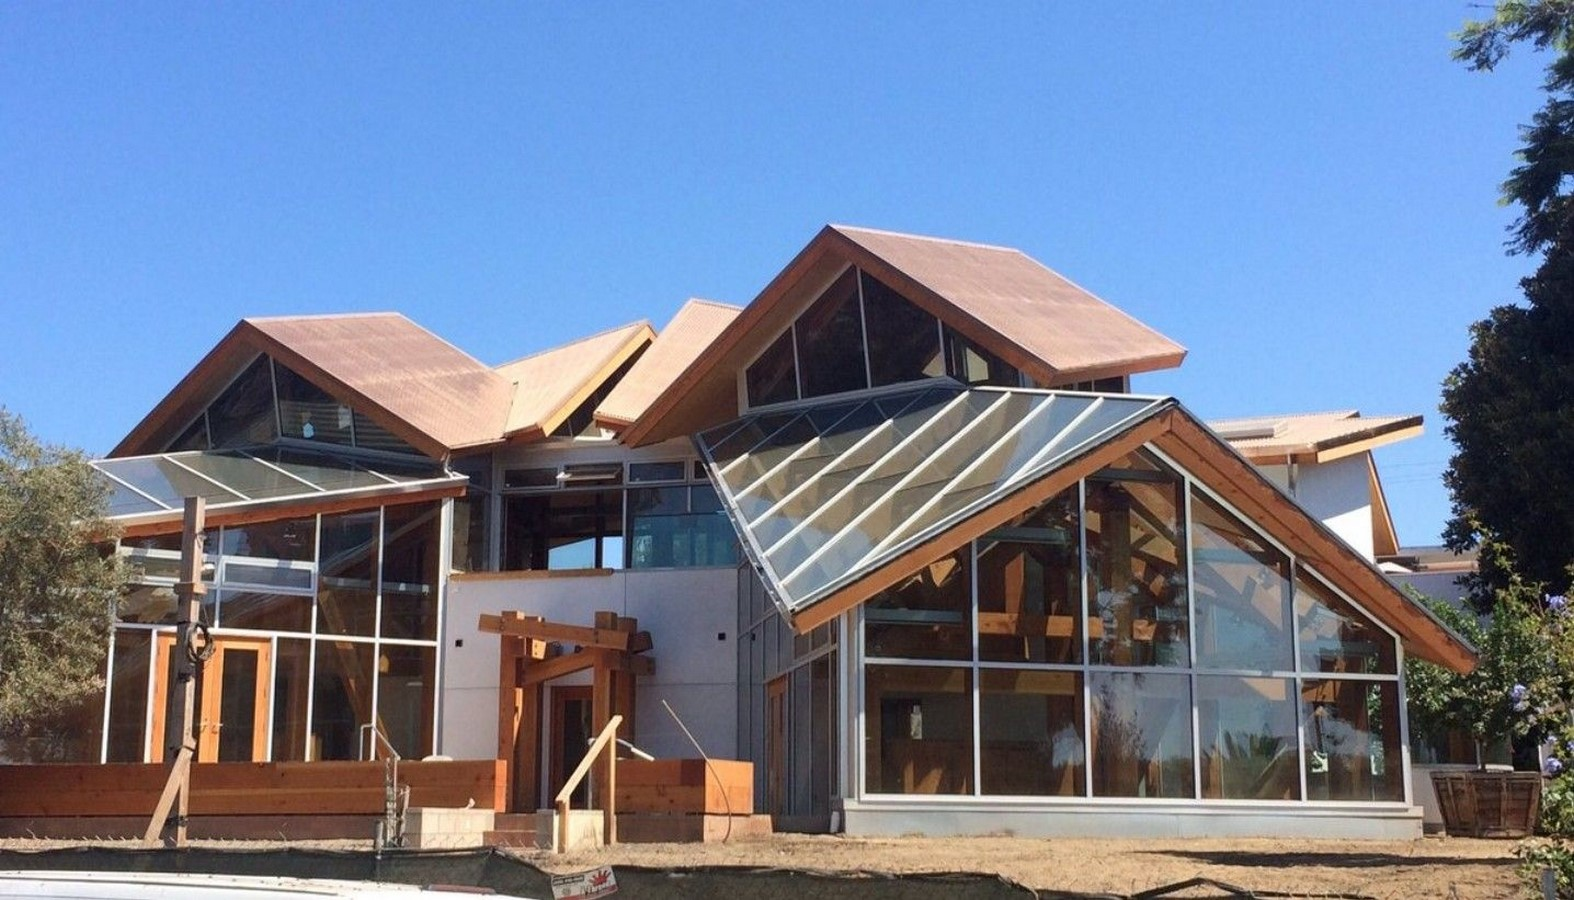 Gehry Residence by Frank Gehry: Balance between old and new - Sheet2